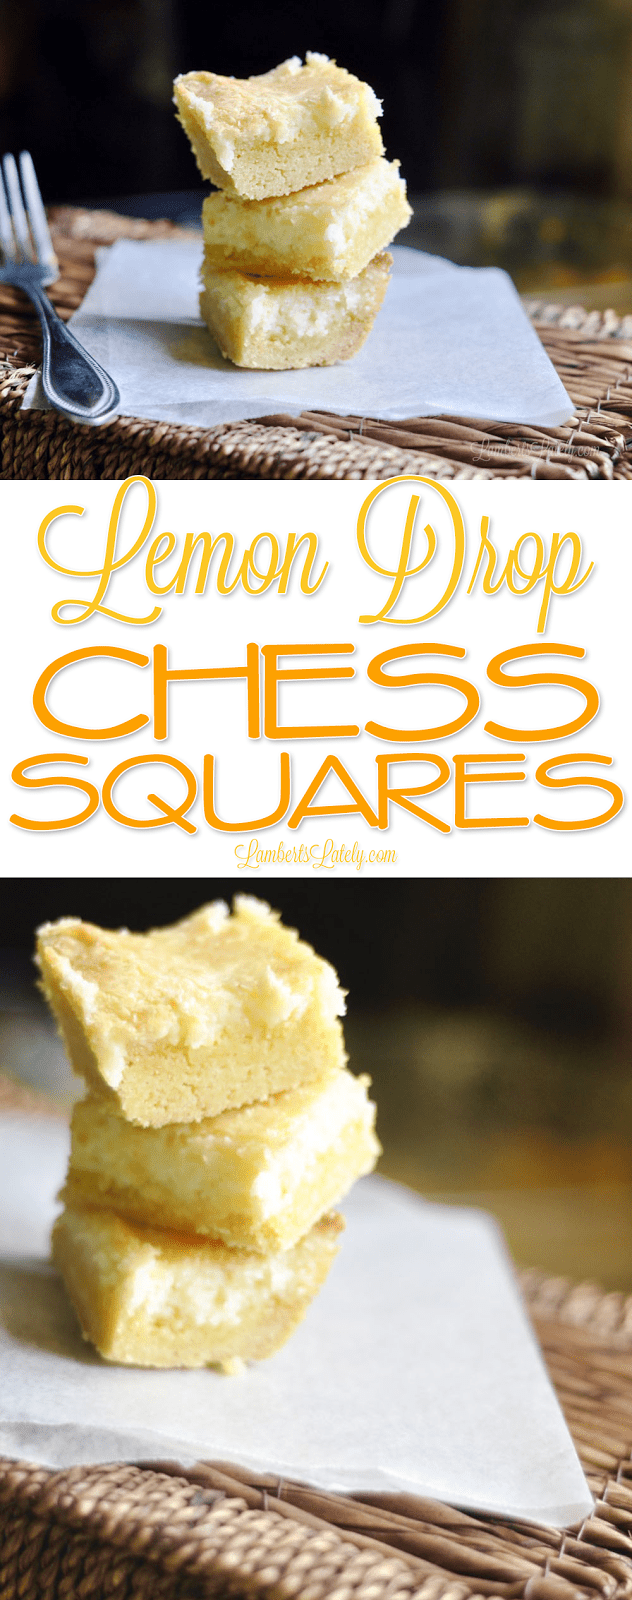 This easy recipe for Lemon Drop Chess Squares uses a from scratch recipe to make the Southern classic. This lemon-flavored chess cake/pie is incredibly rich!